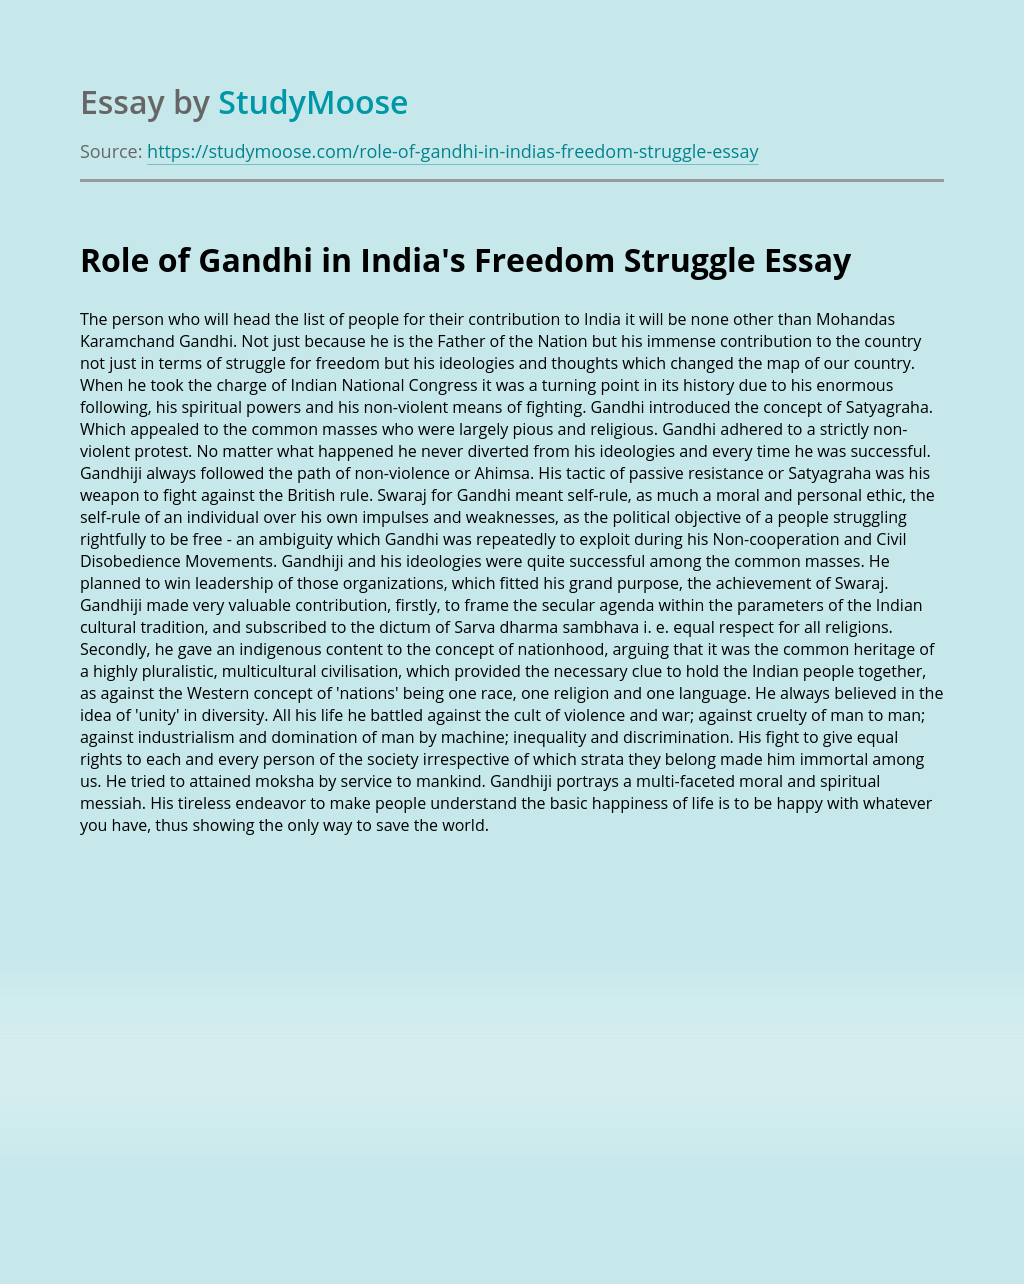 Role of Gandhi in India's Freedom Struggle